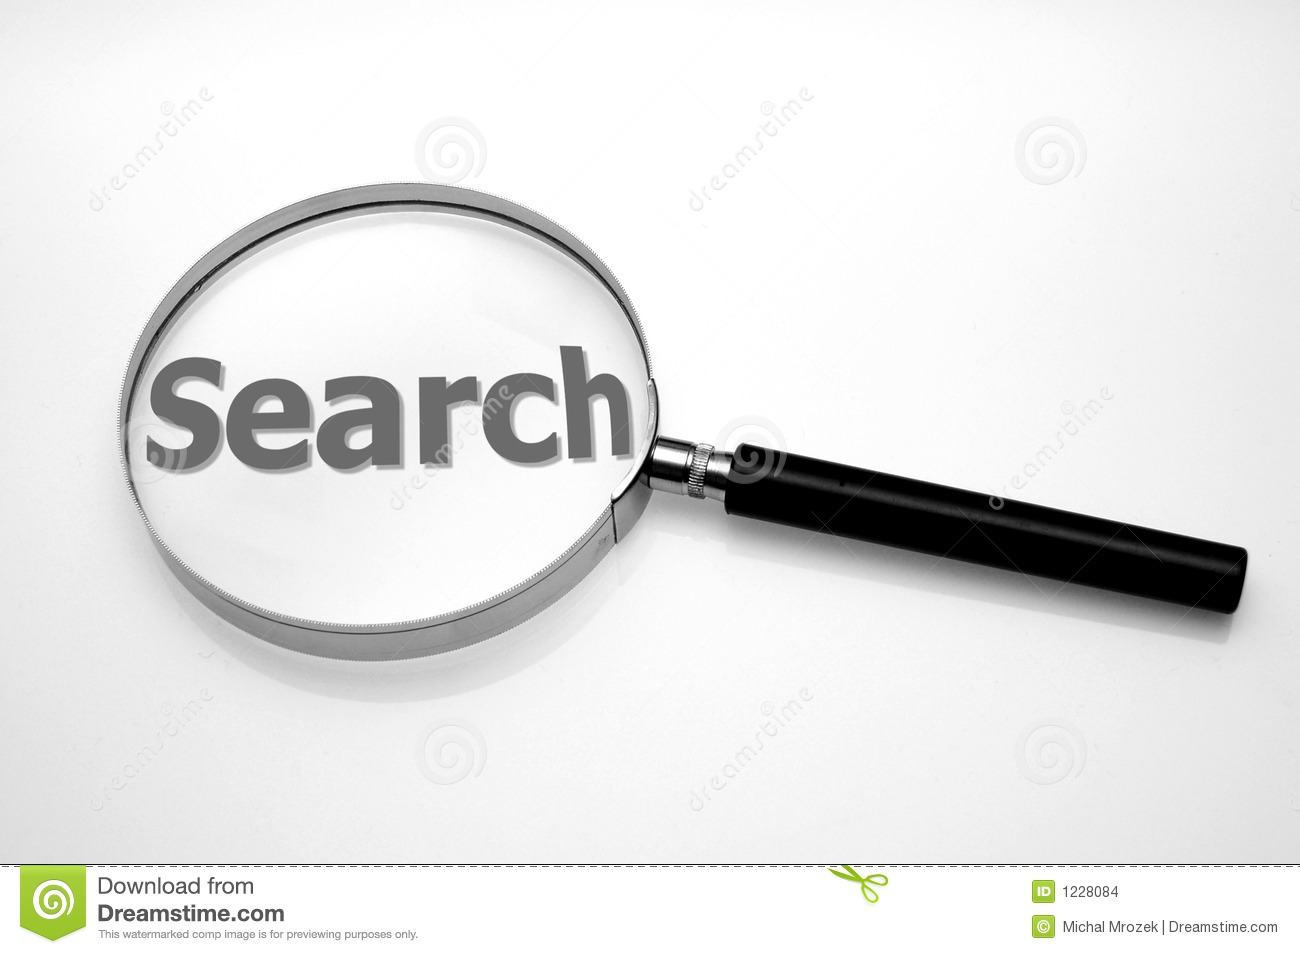 Magnifying Glass - Search Stock Images - Image: 1228084: dreamstime.com/stock-images-magnifying-glass-search-image1228084